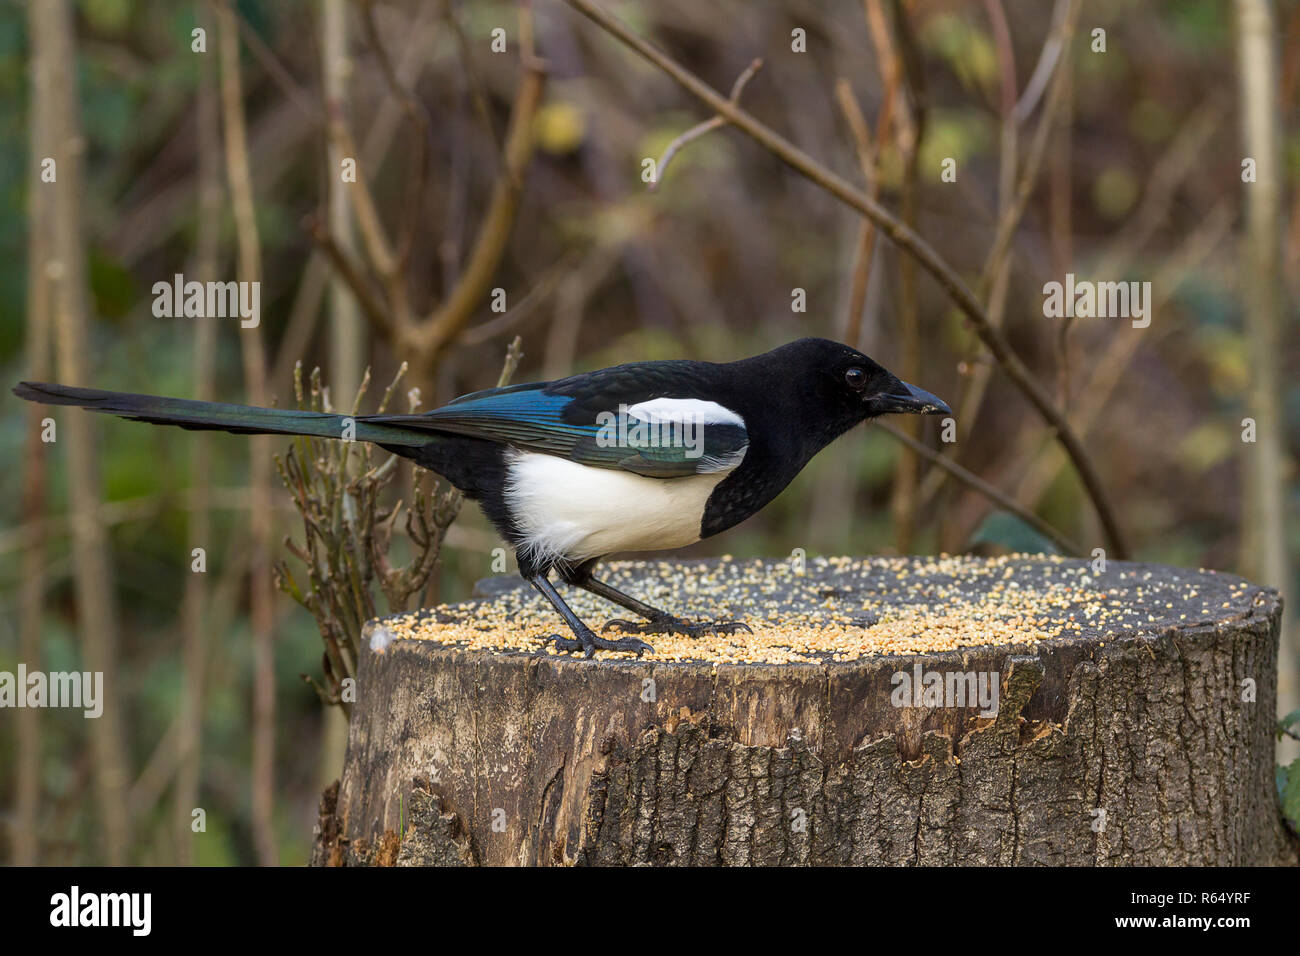 Magpie (Pica pica) familiar black and white crow with long wedge shaped tail and oily blue green sheen on wings and tail feeding on seed on a stump. - Stock Image